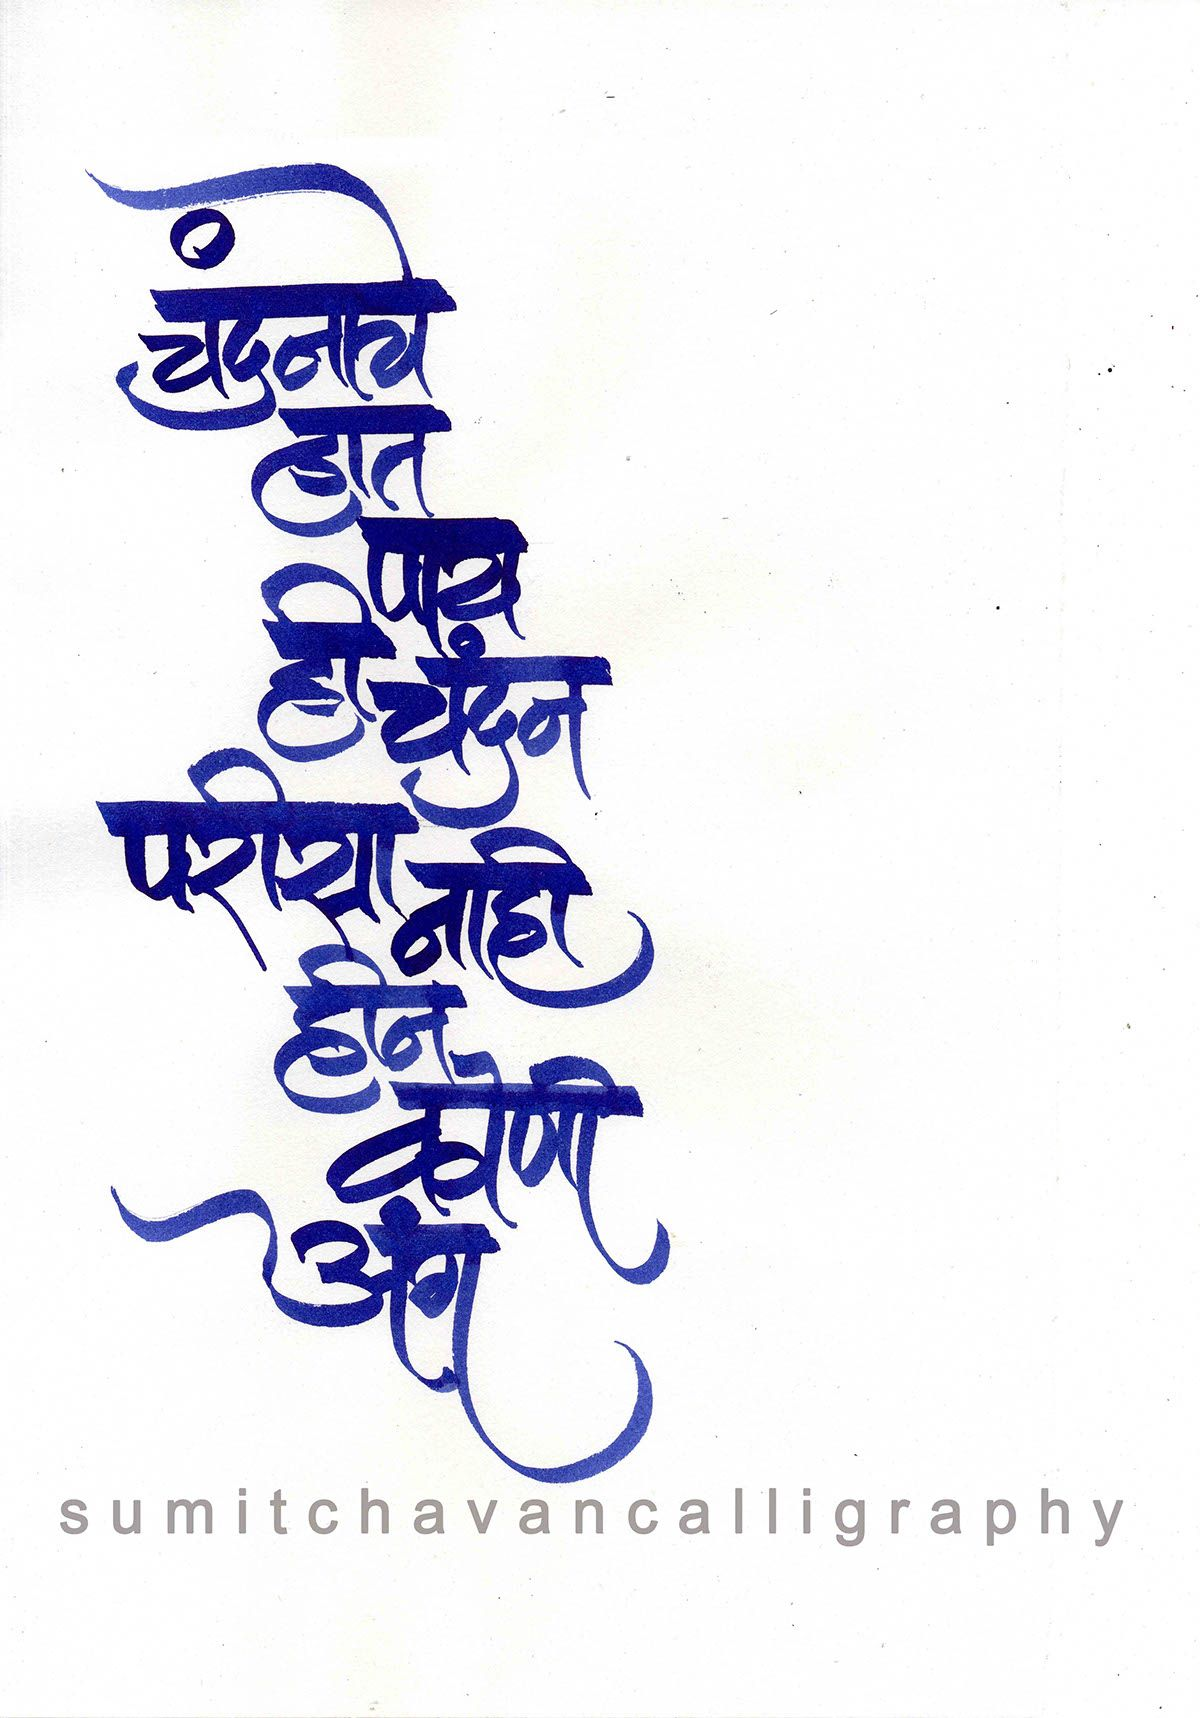 CalligraphyChandna Che Hat On Behance